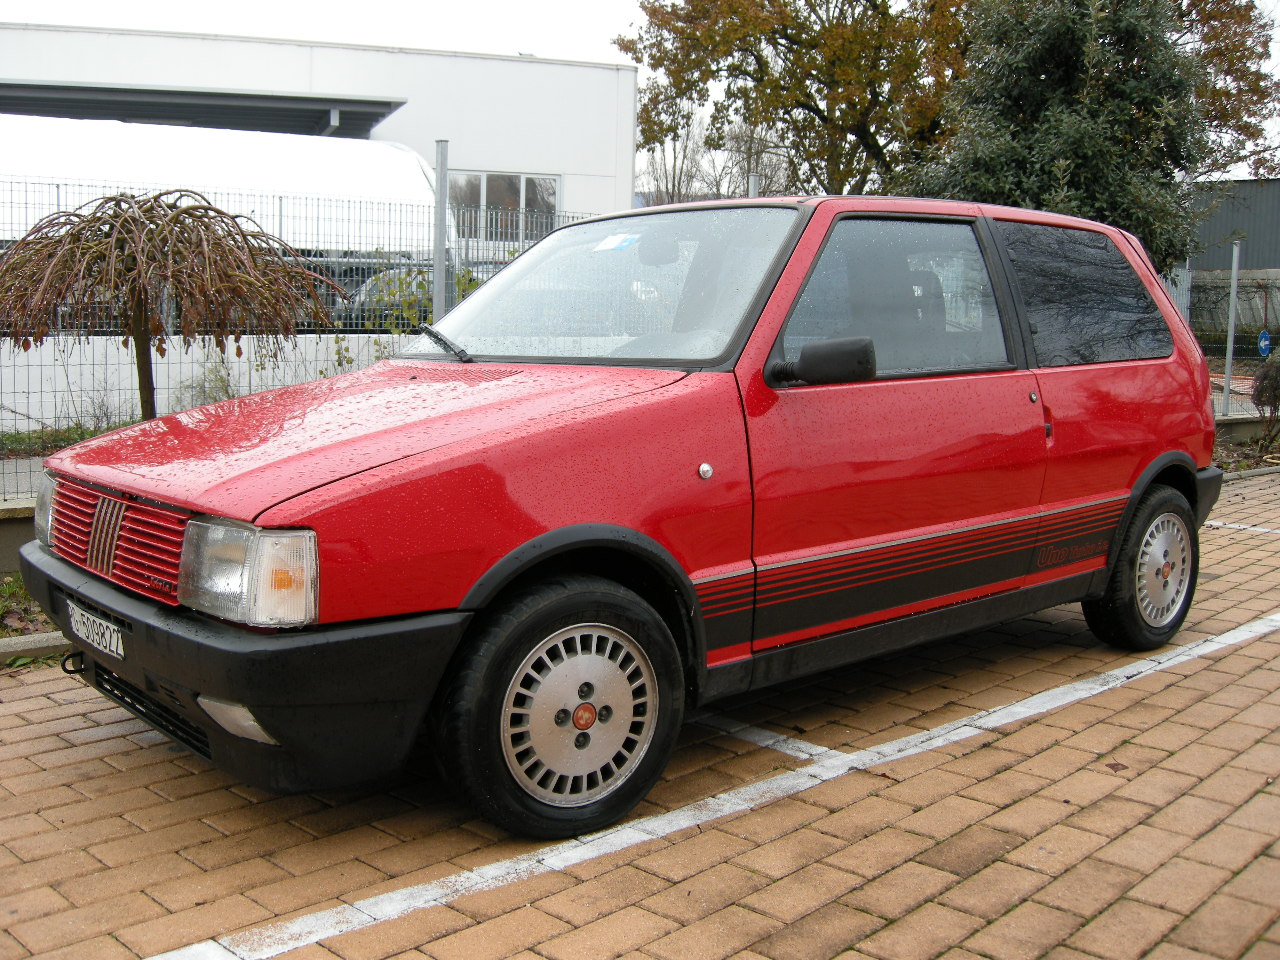 Fiat Uno I Restyling 1989 - 2002 Hatchback 3 door #1